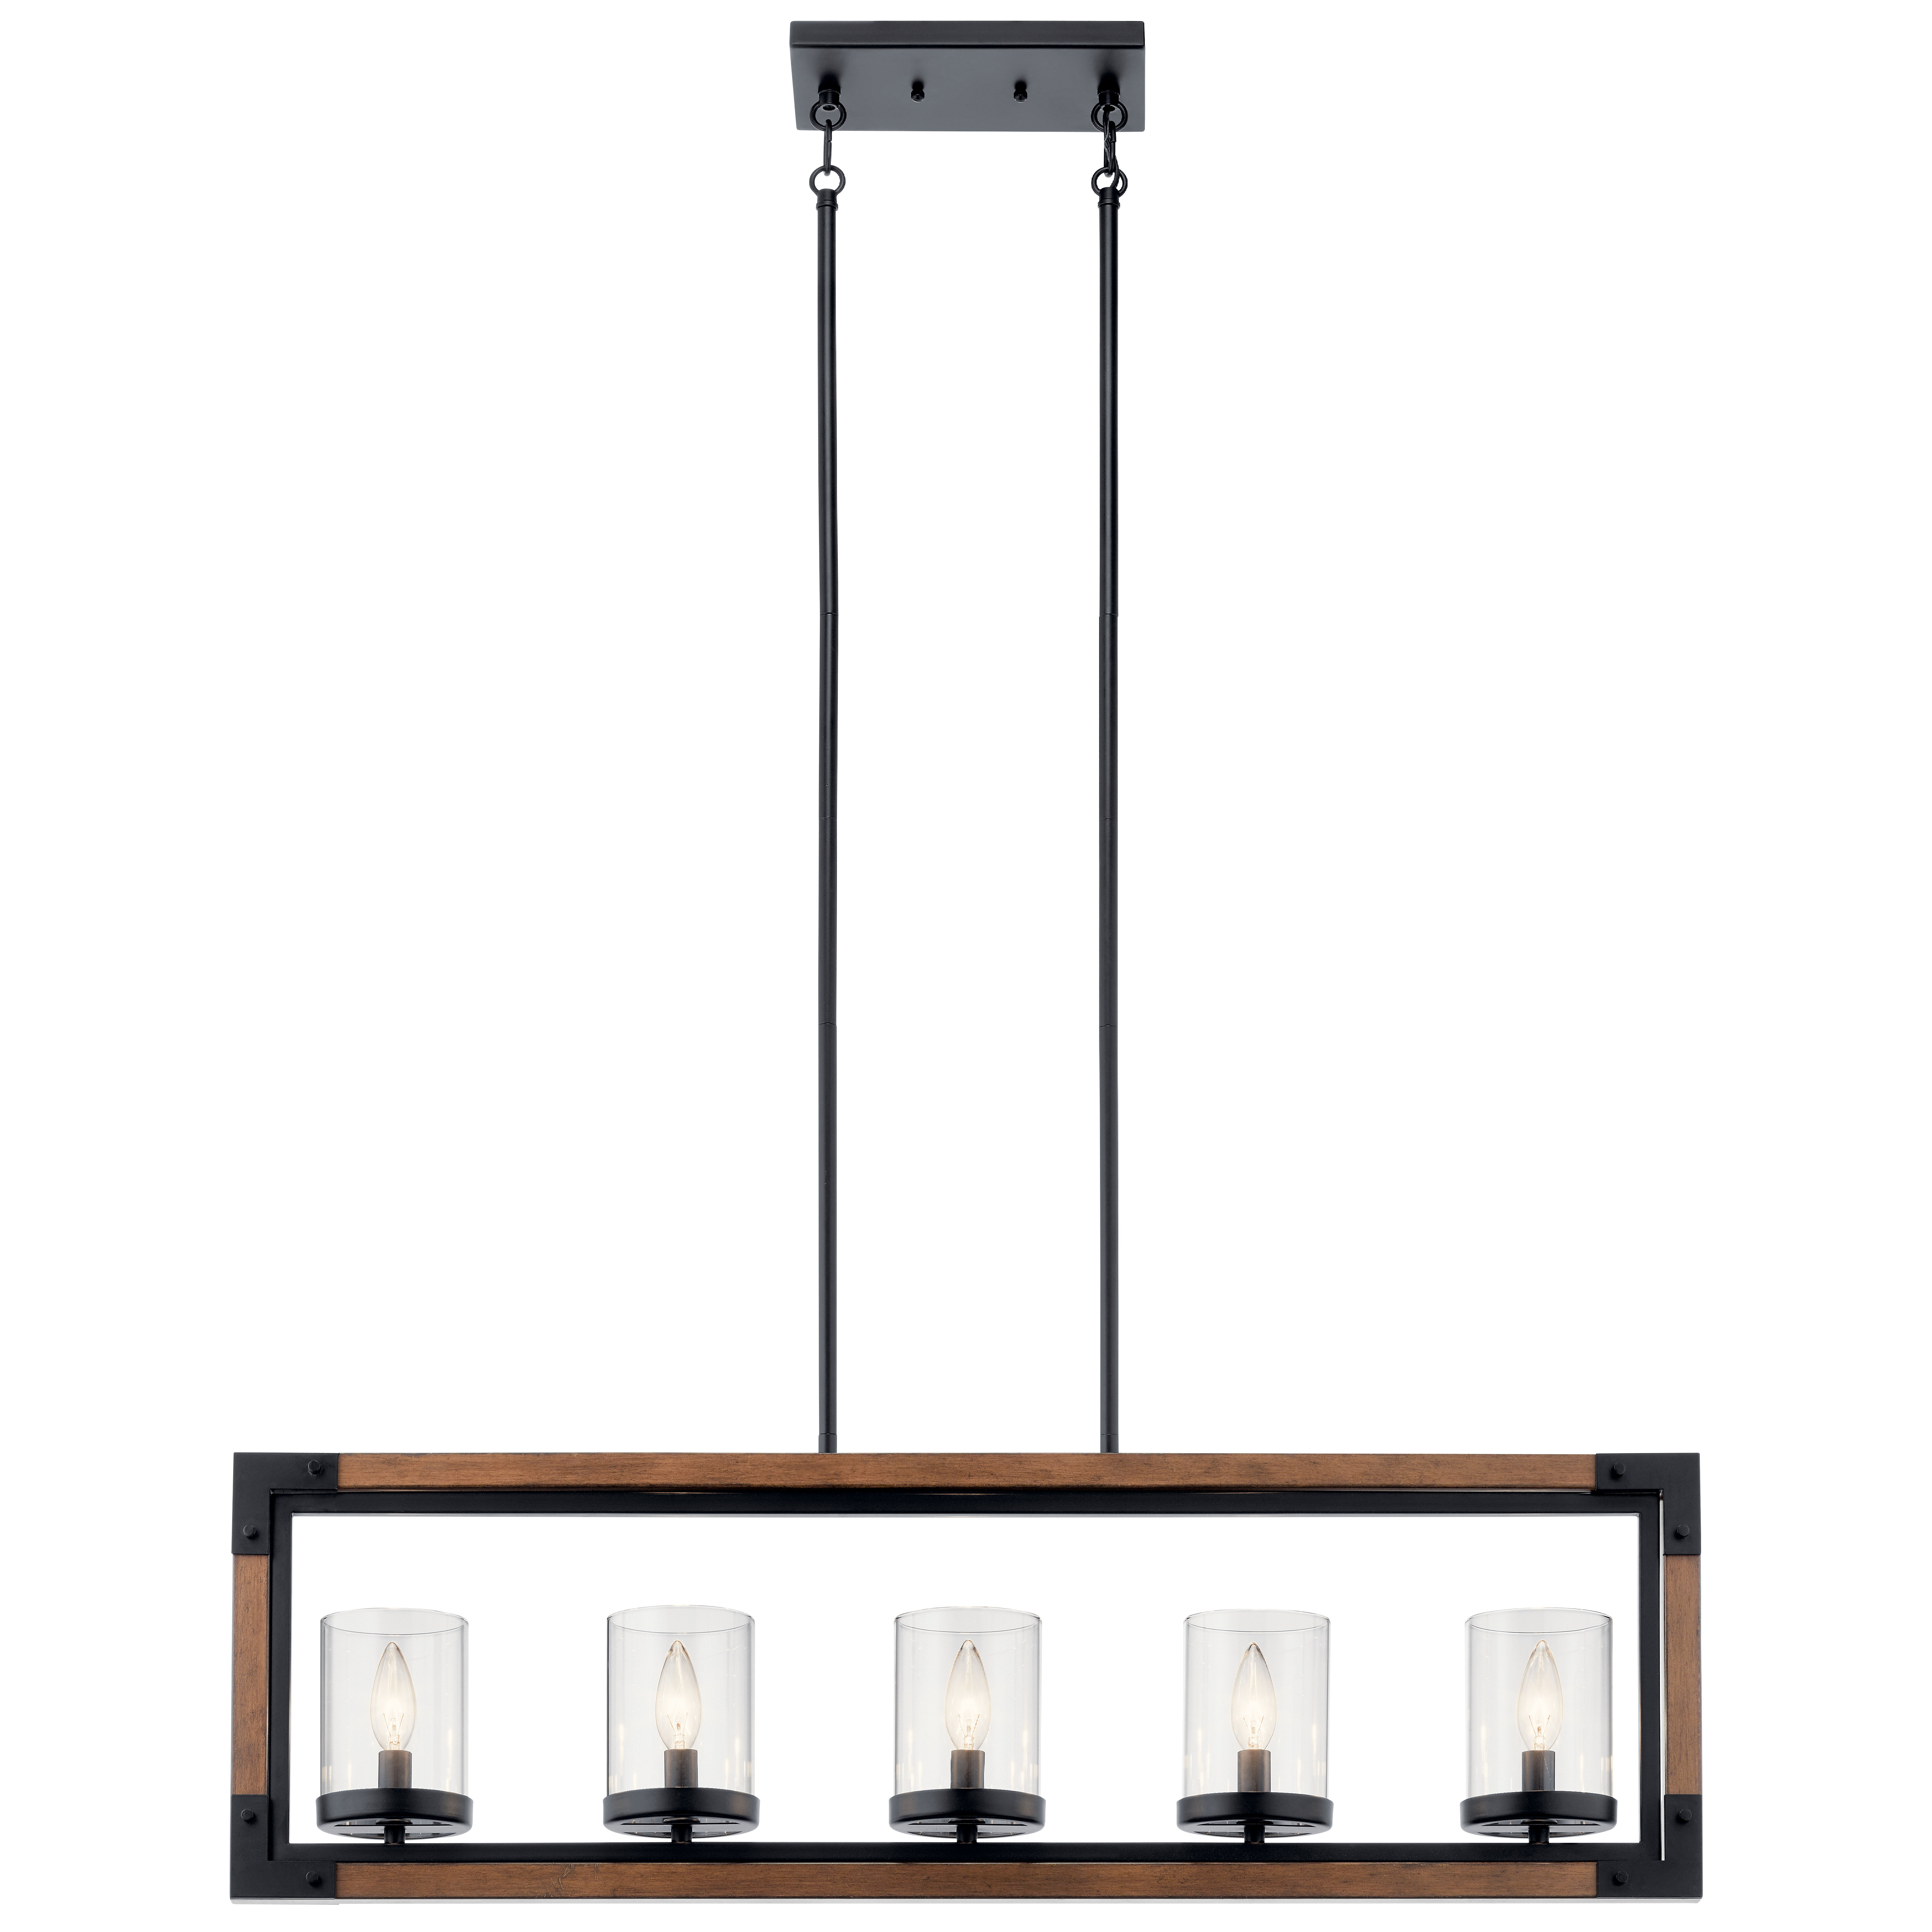 Hinerman 5 Light Kitchen Island Pendants For Best And Newest Moro Linear 5 Light Kitchen Island Pendant (View 14 of 20)